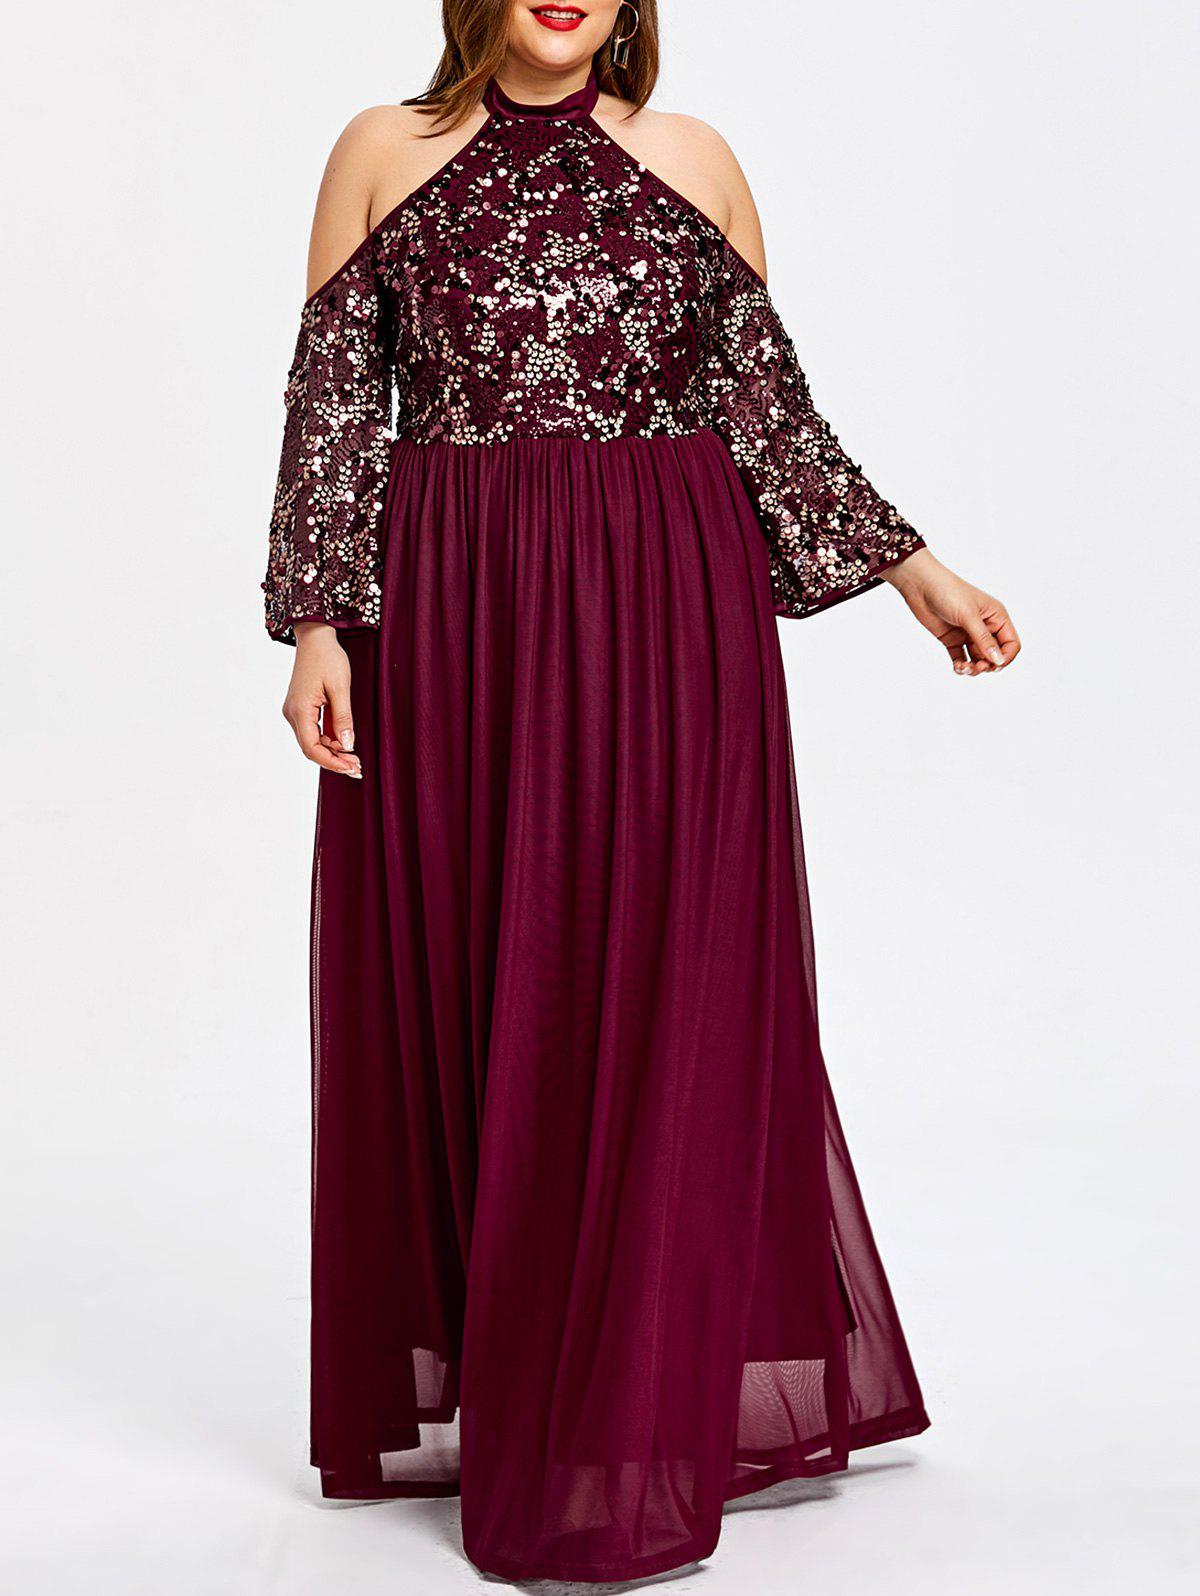 2018 Plus Size Sequined Cold Shoulder Prom Dress Wine Red Xl In Maxi